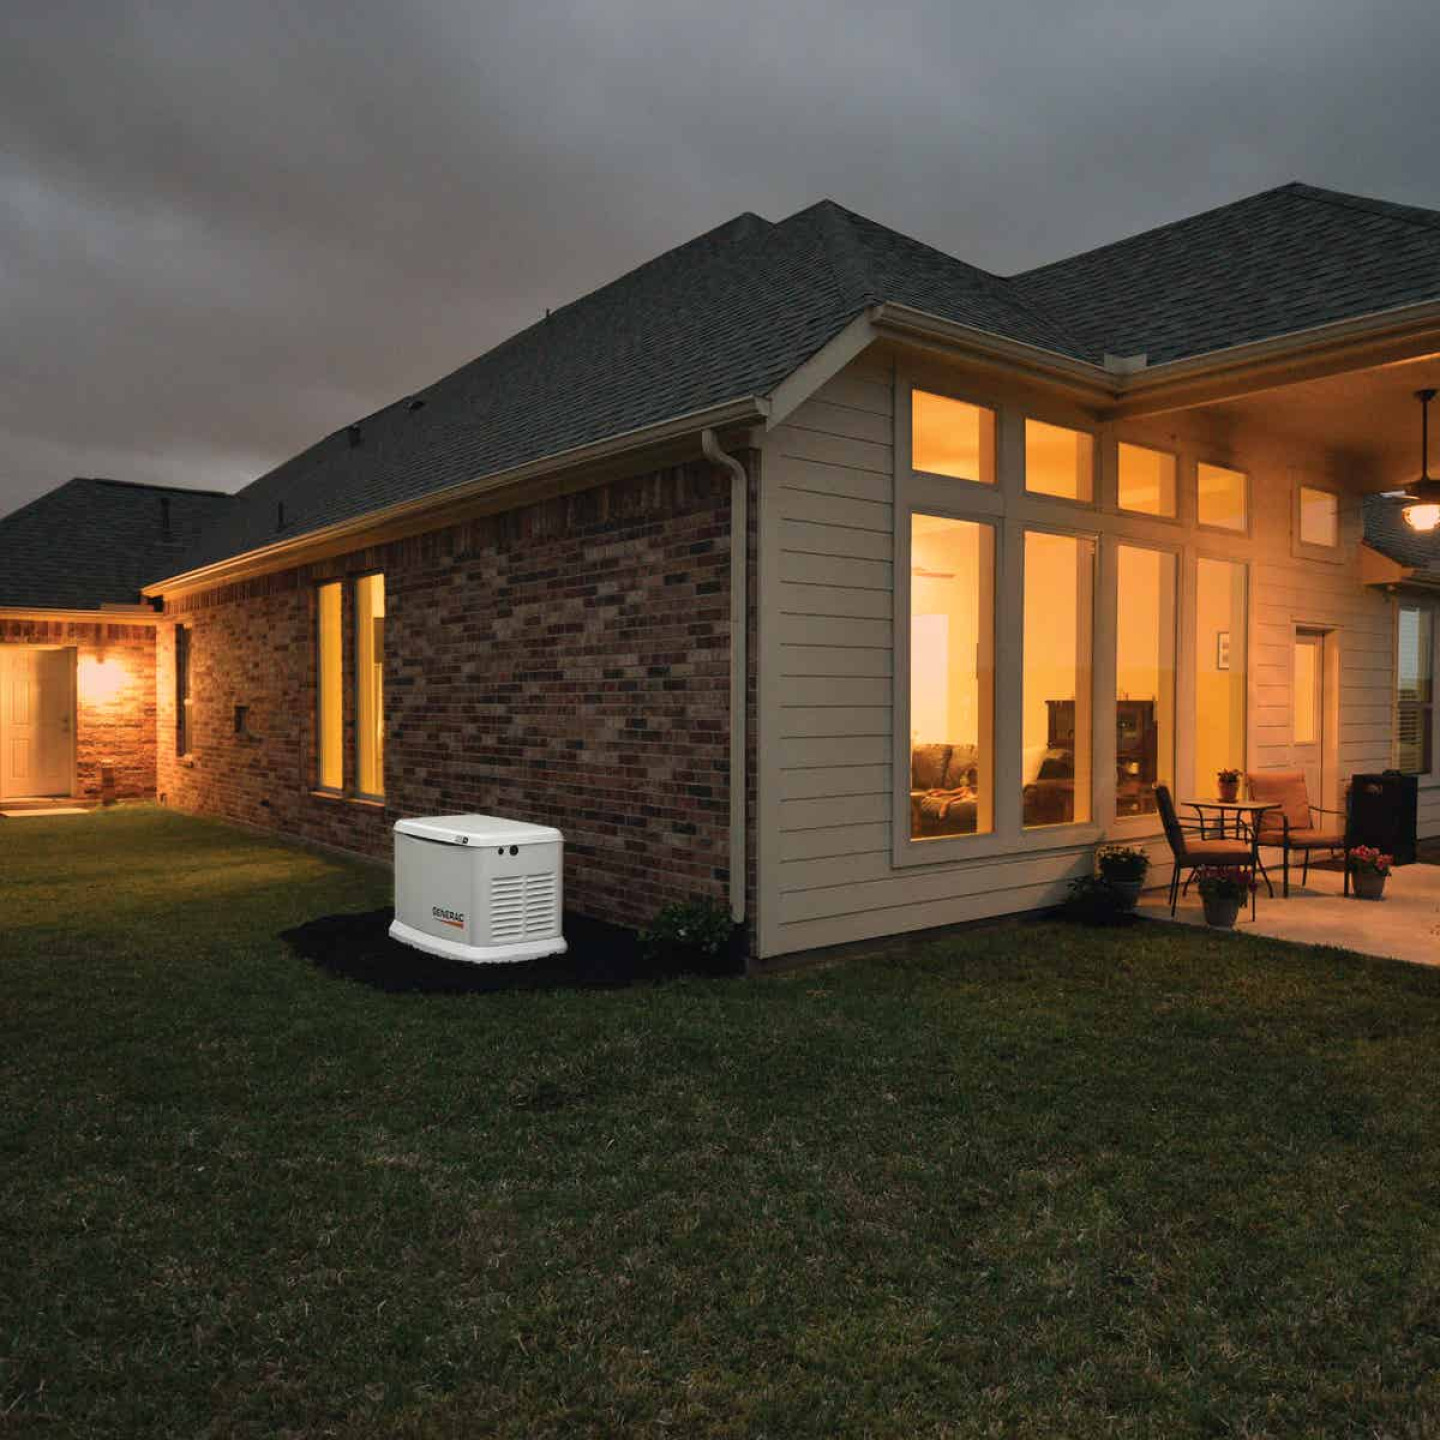 Generac Guardian WiFi 16,000W Natural Gas/LP Home Standby Generator Home Back Up Generator with Smart Switch Image 2